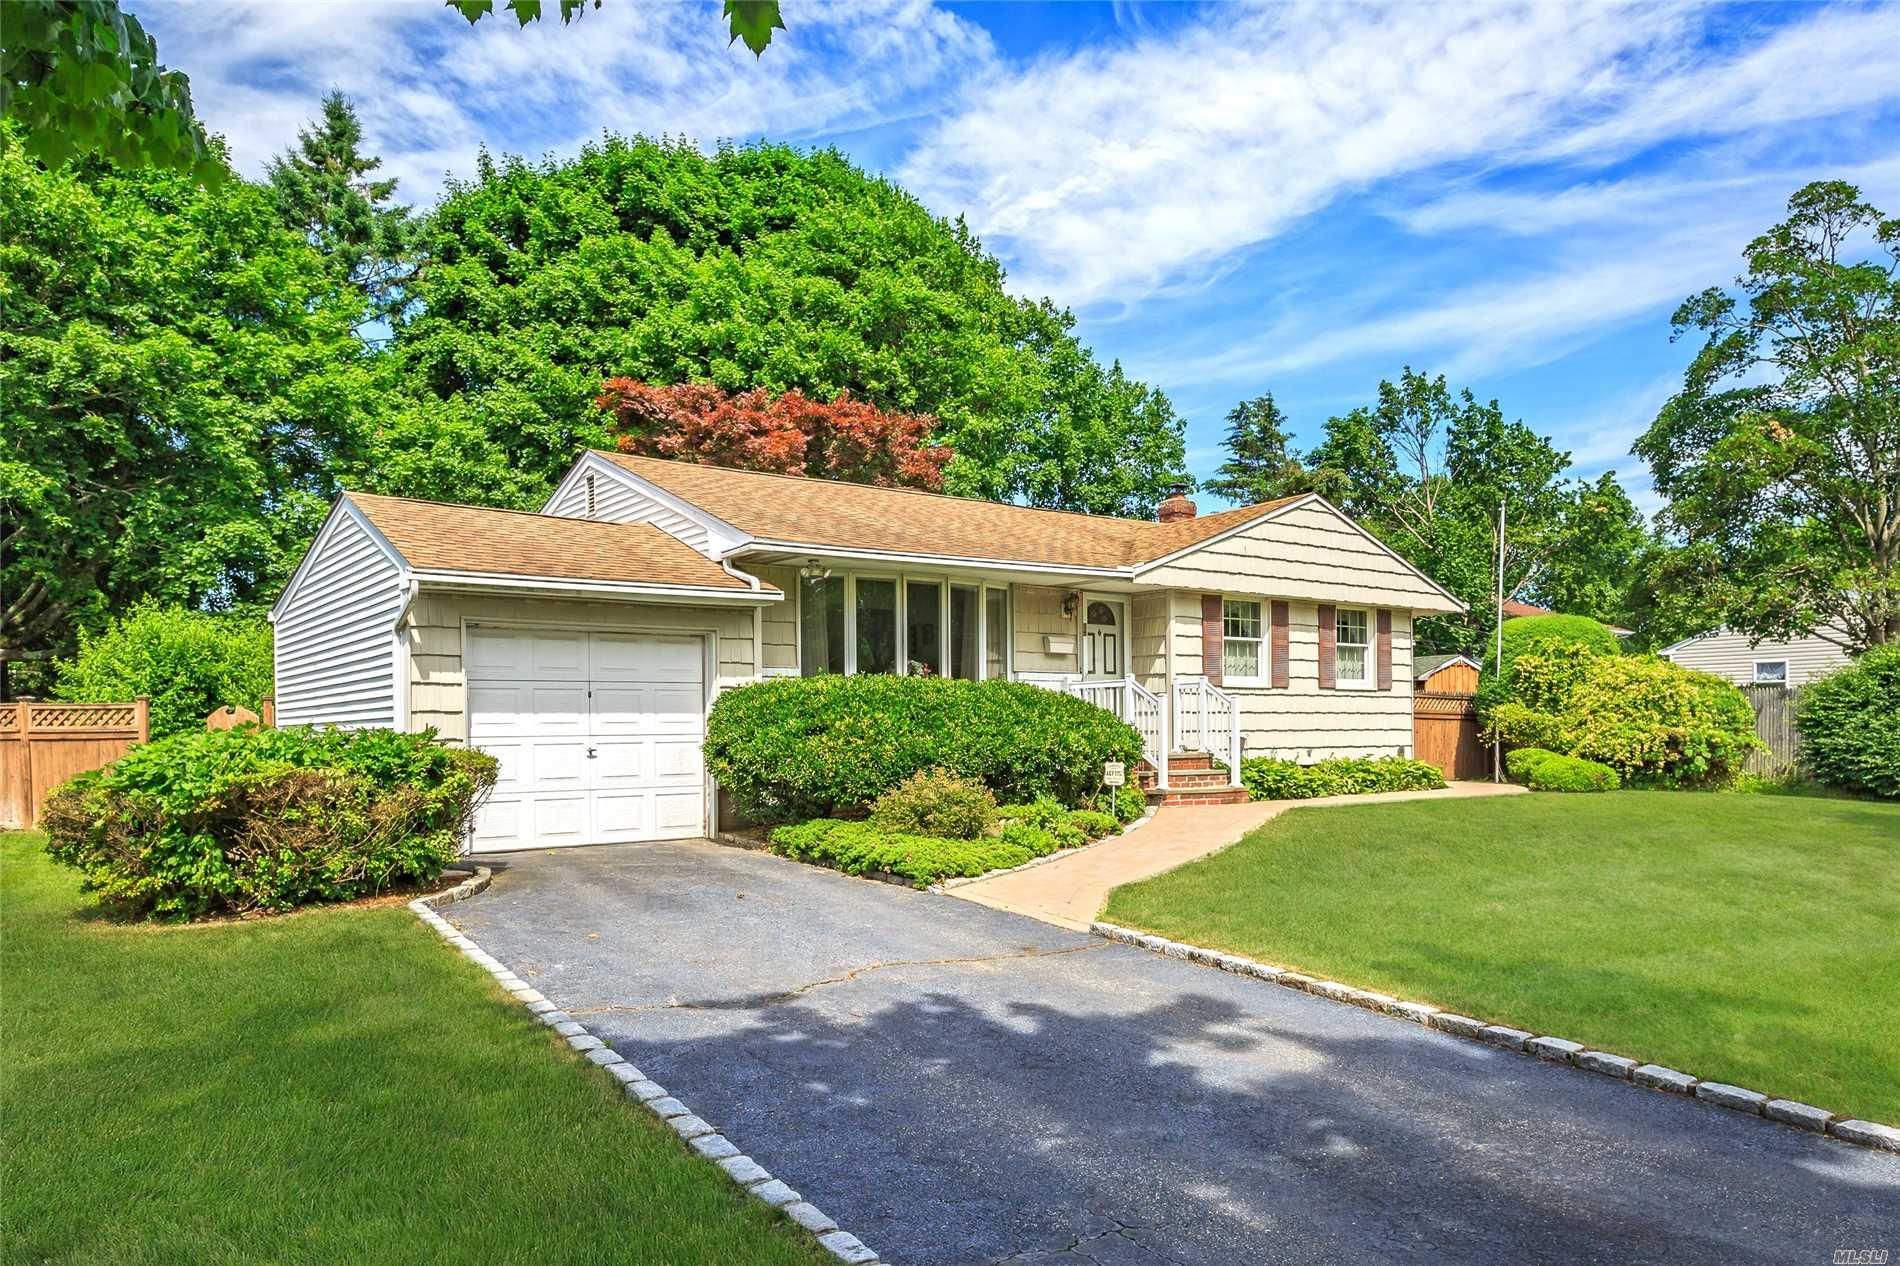 58 Ruth Blvd - Commack, New York